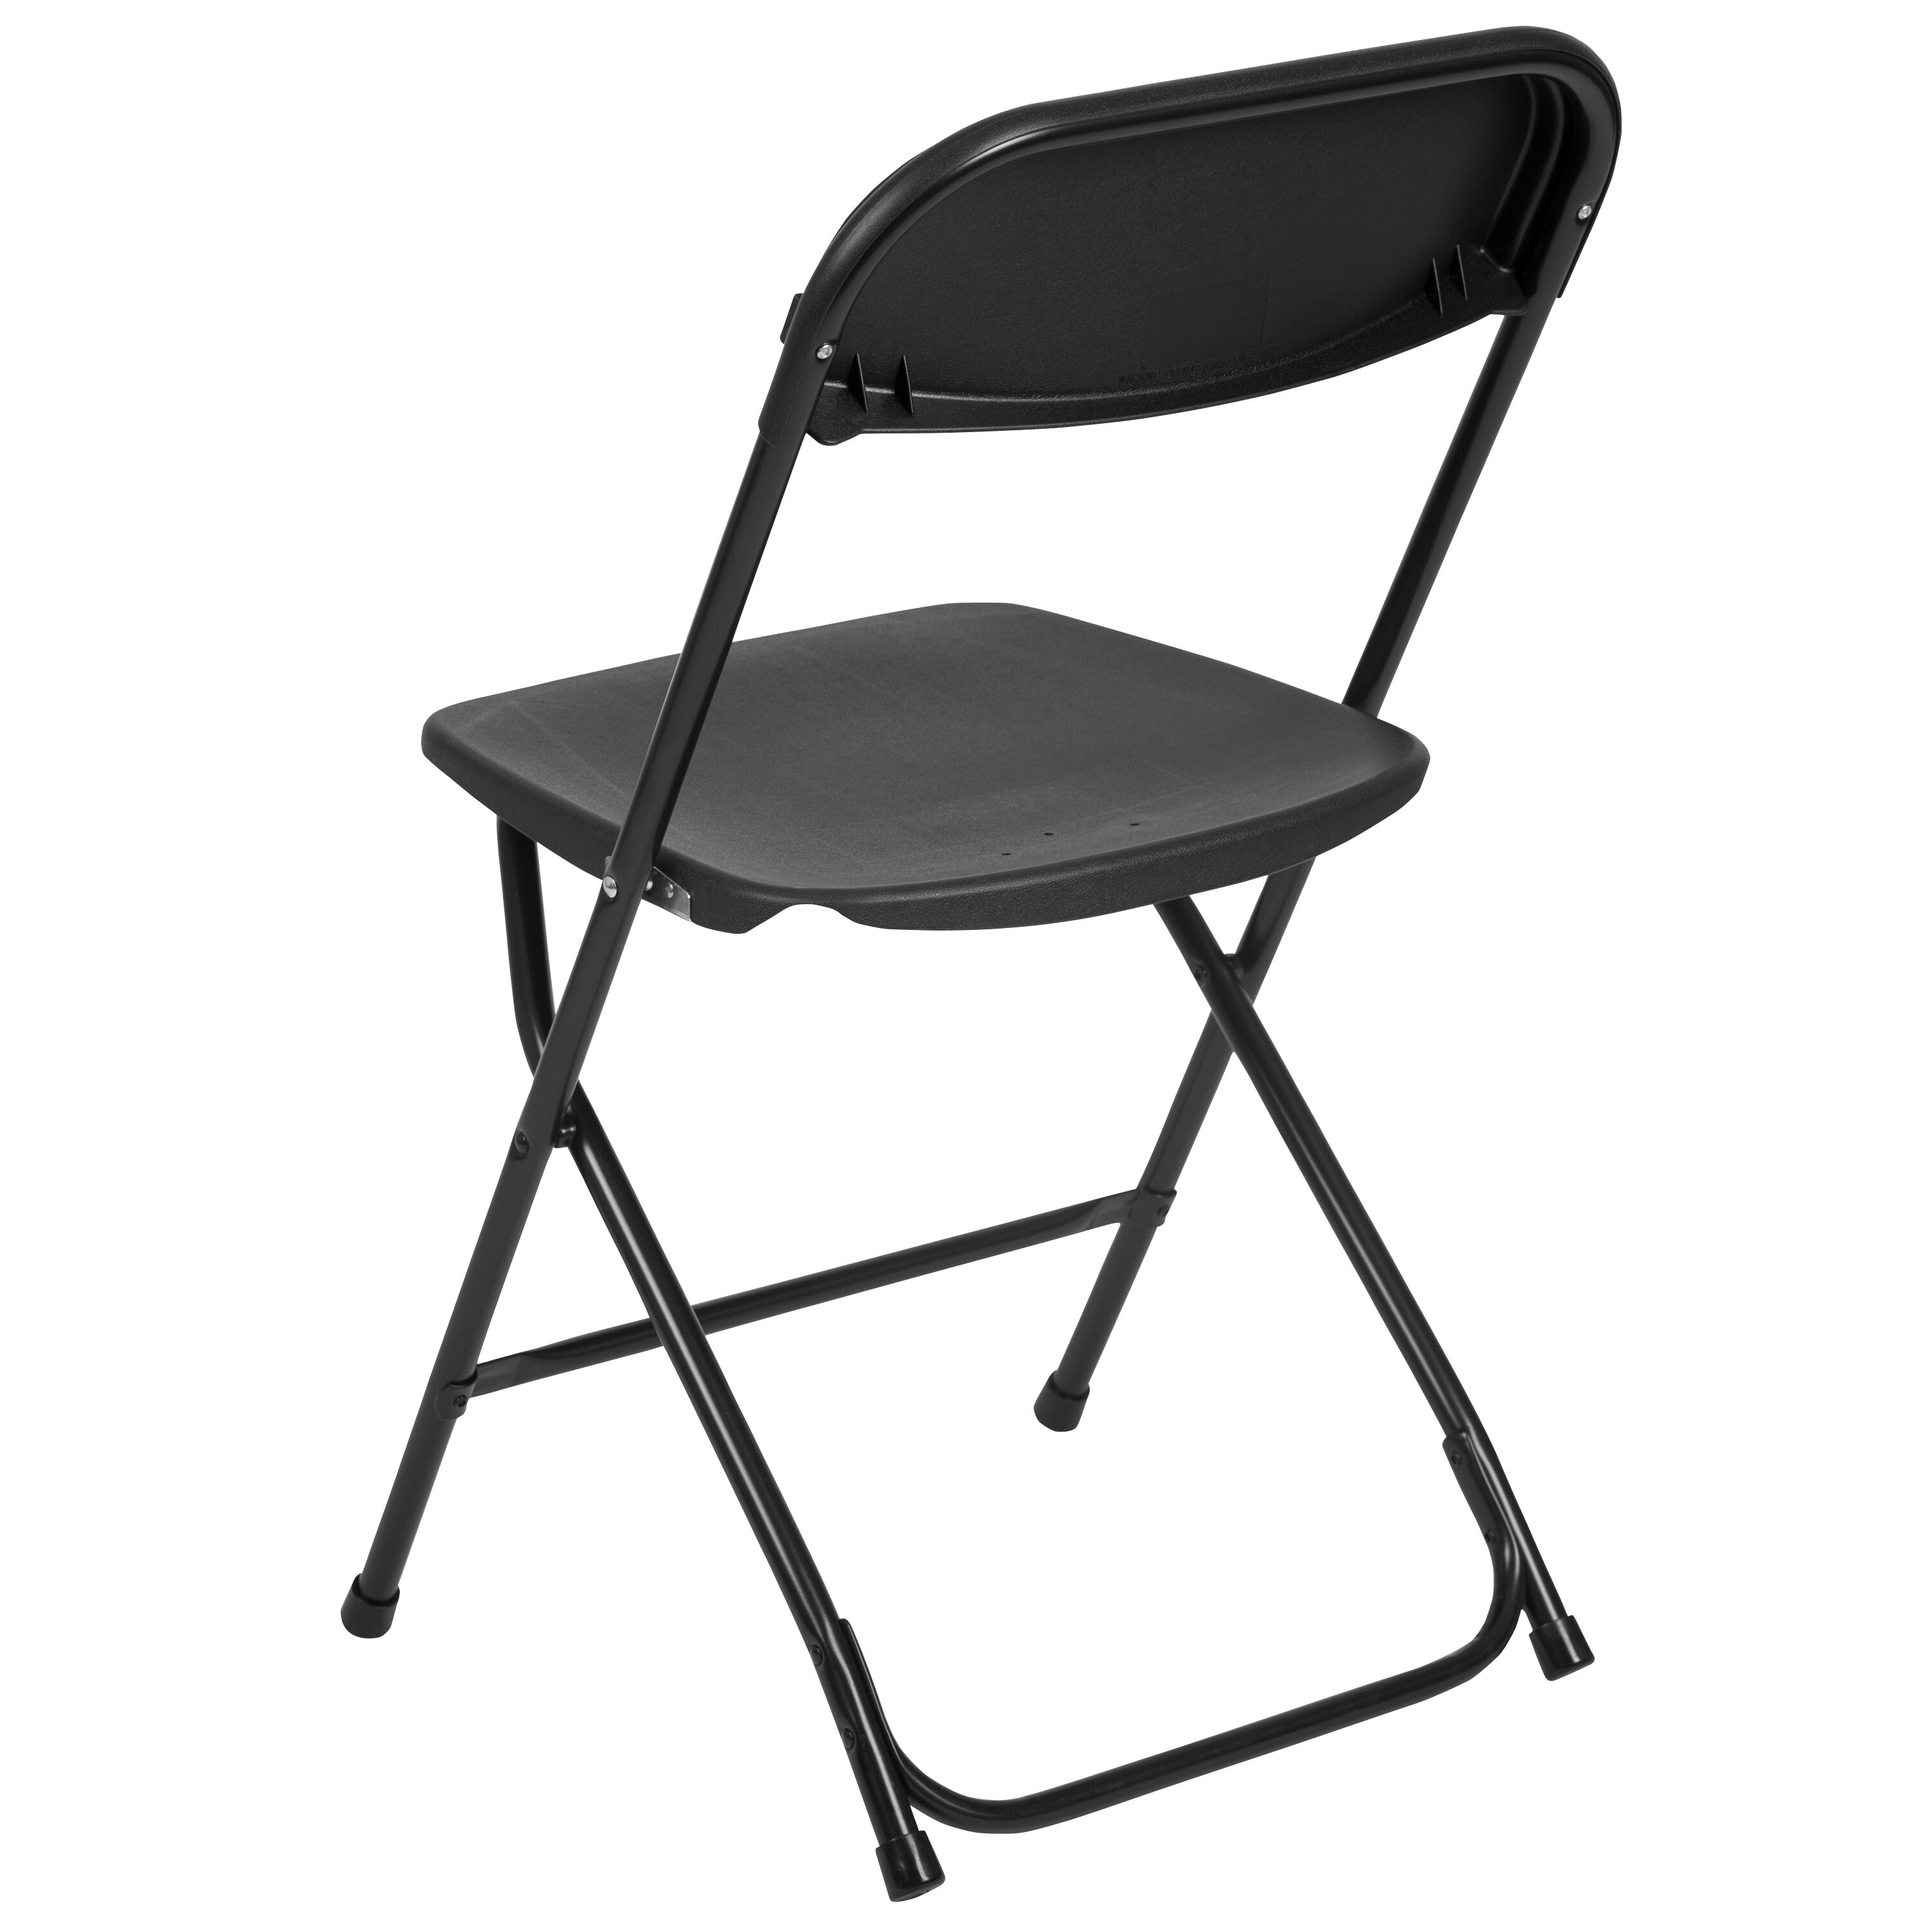 Capacity Premium Black Plastic Folding Chair Is On Sale Now ...